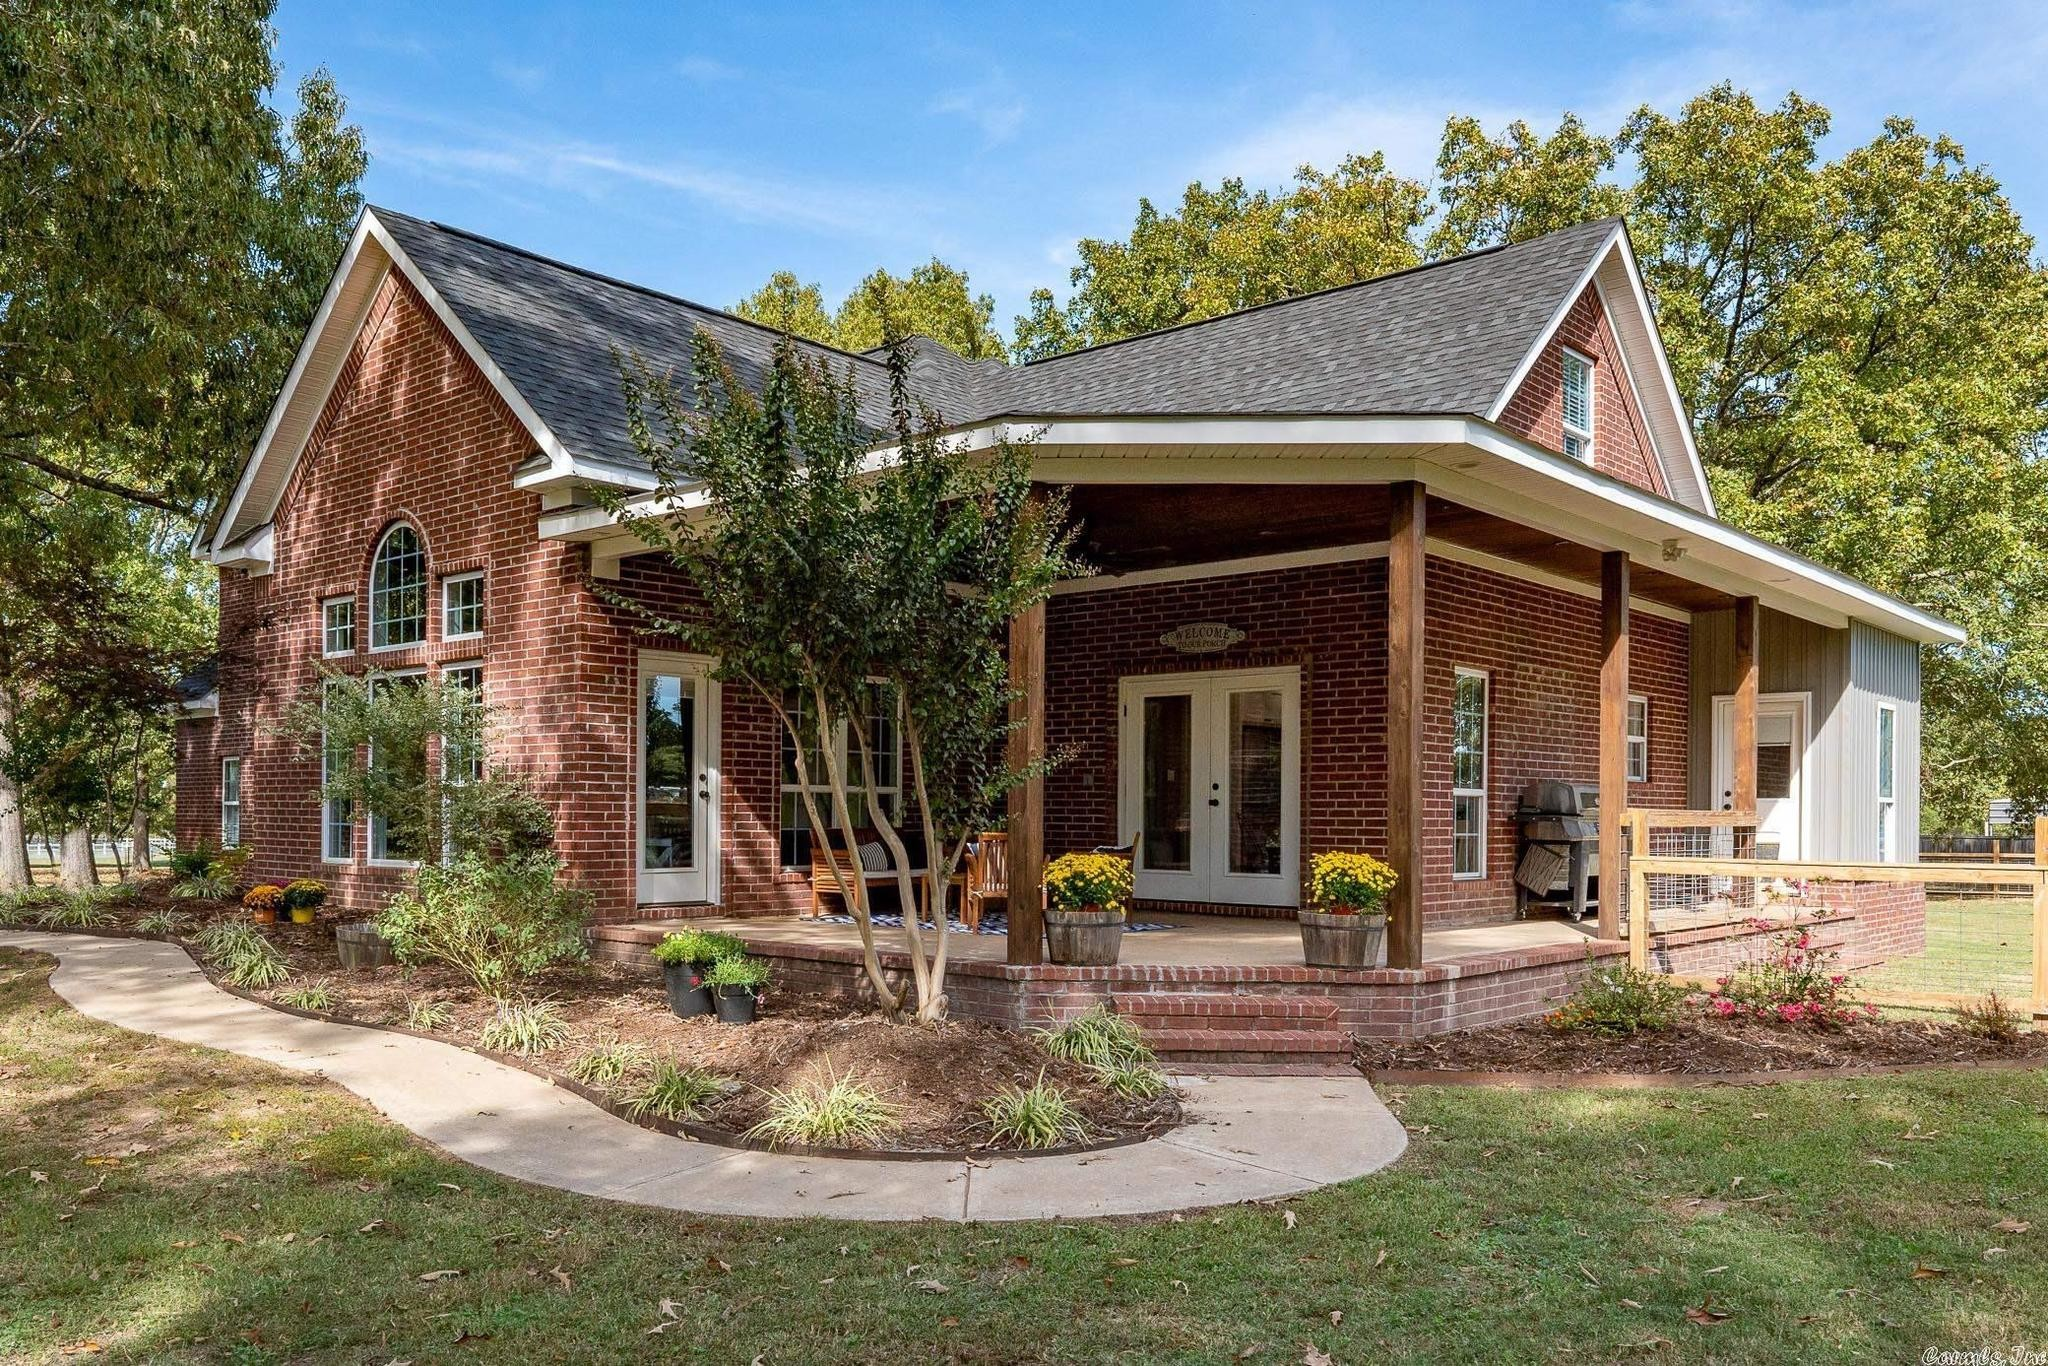 3-Bedroom House In Greenbrier